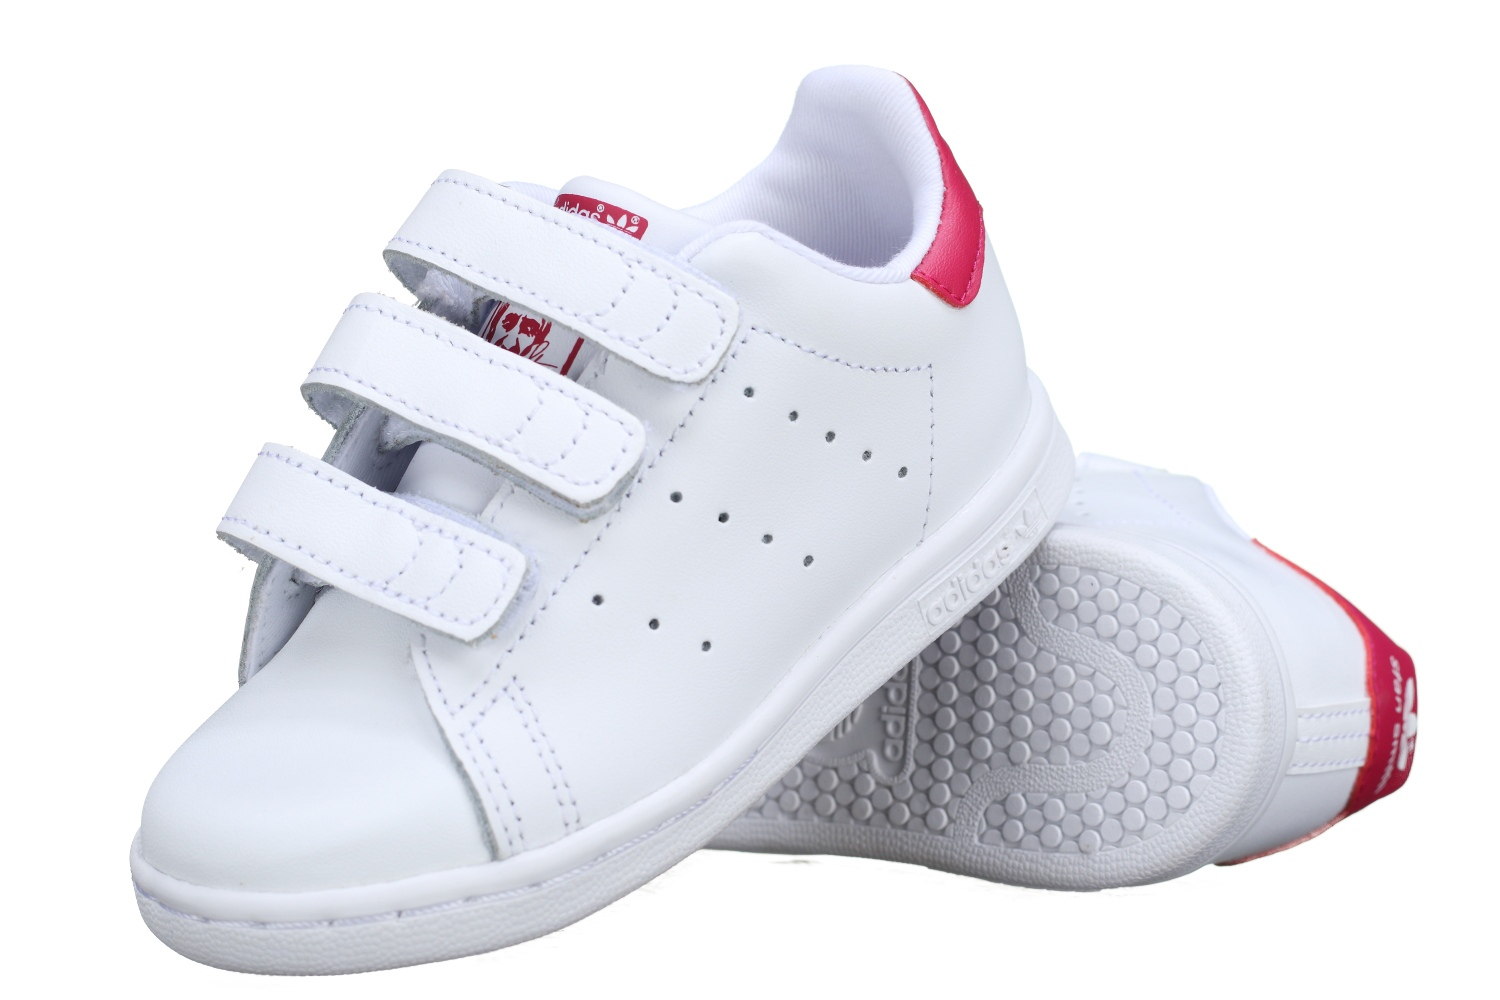 http://www.leadermode.com/138514/adidas-stan-smith-cf-i-bz0523-blanc-rose.jpg